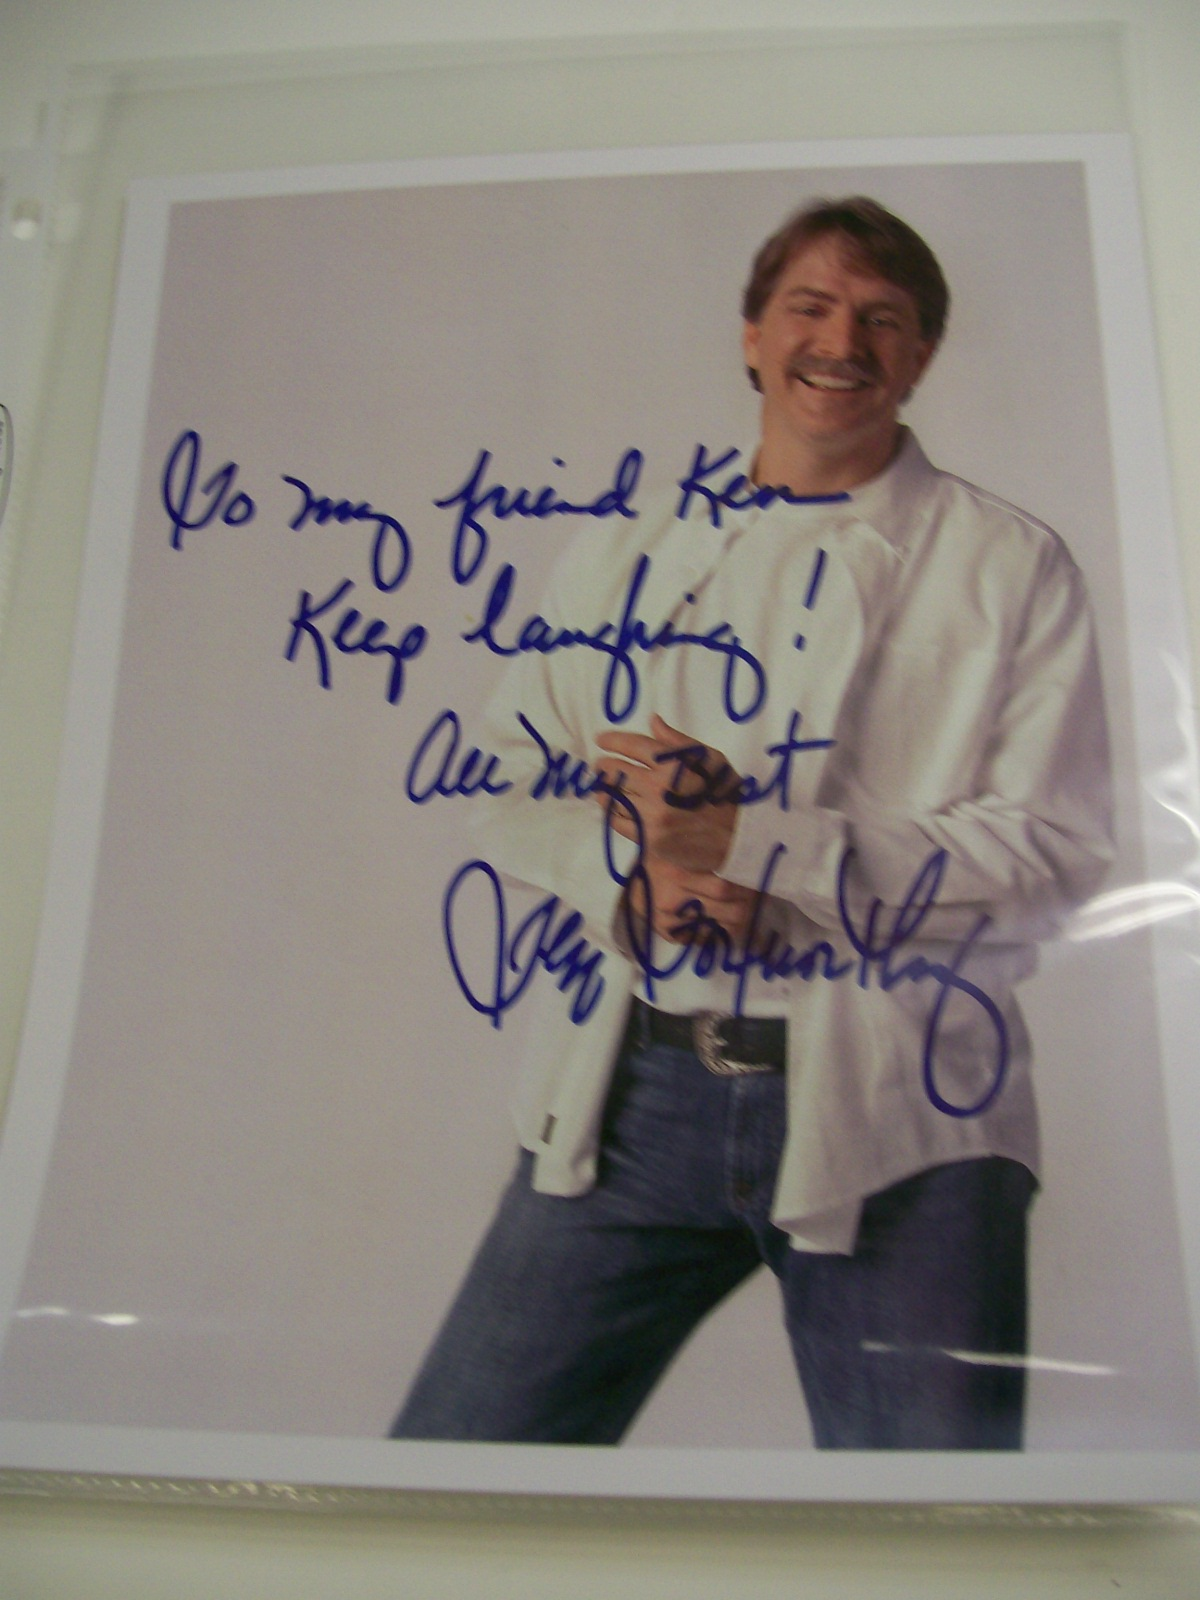 Jeff Foxworthy Autographed Photo from a restaurant in Florida